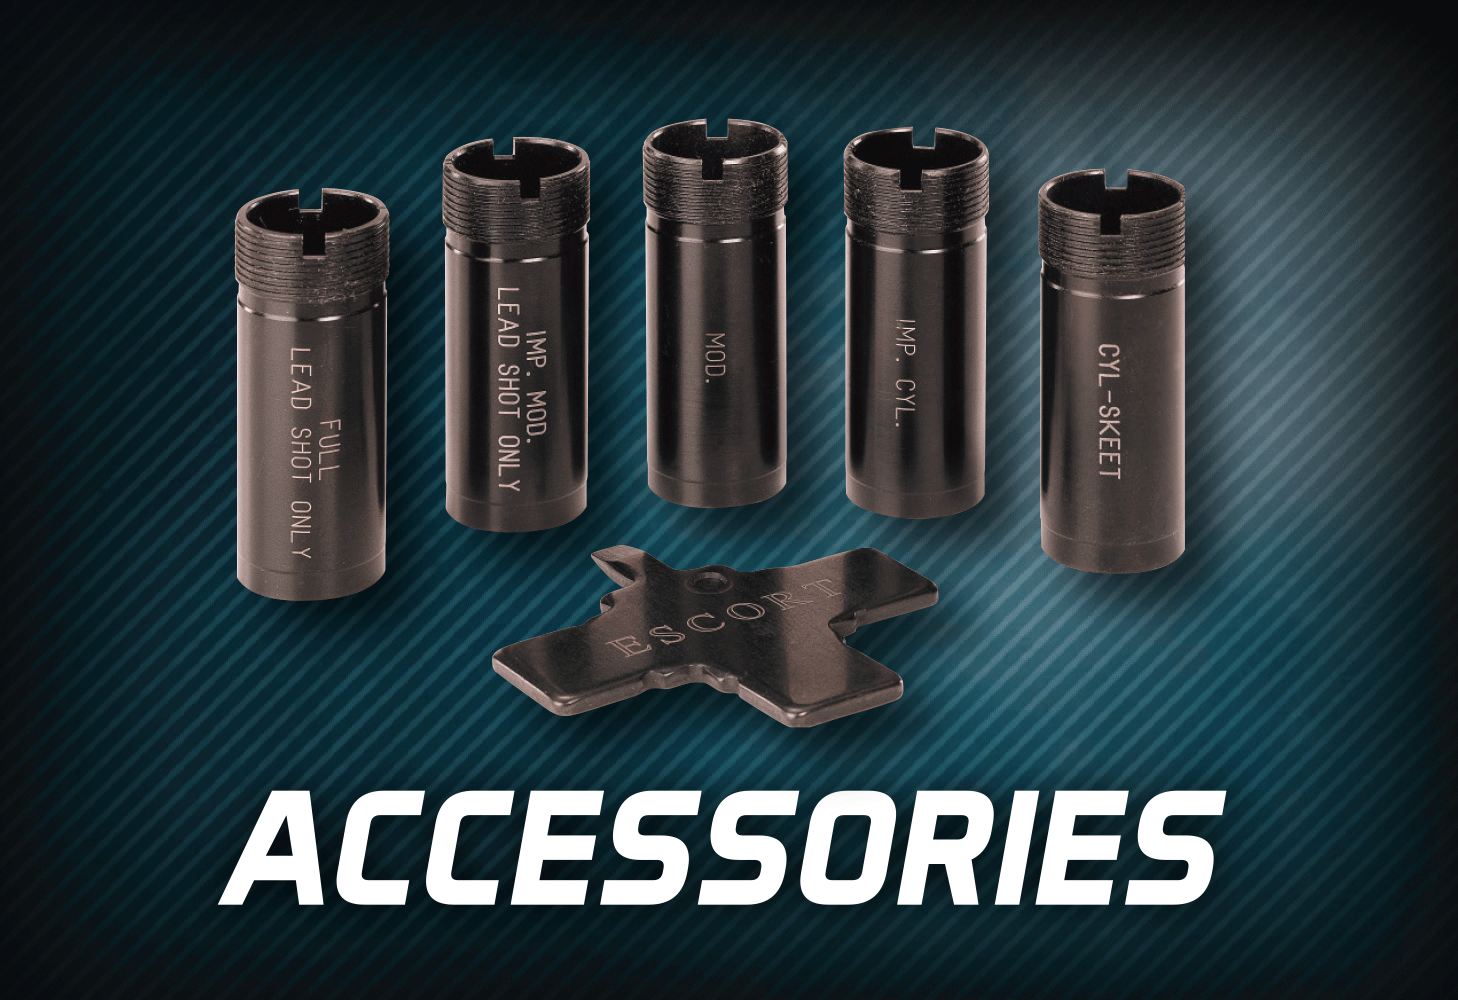 https://escortshotgunsusa.com/product-category/accessories/